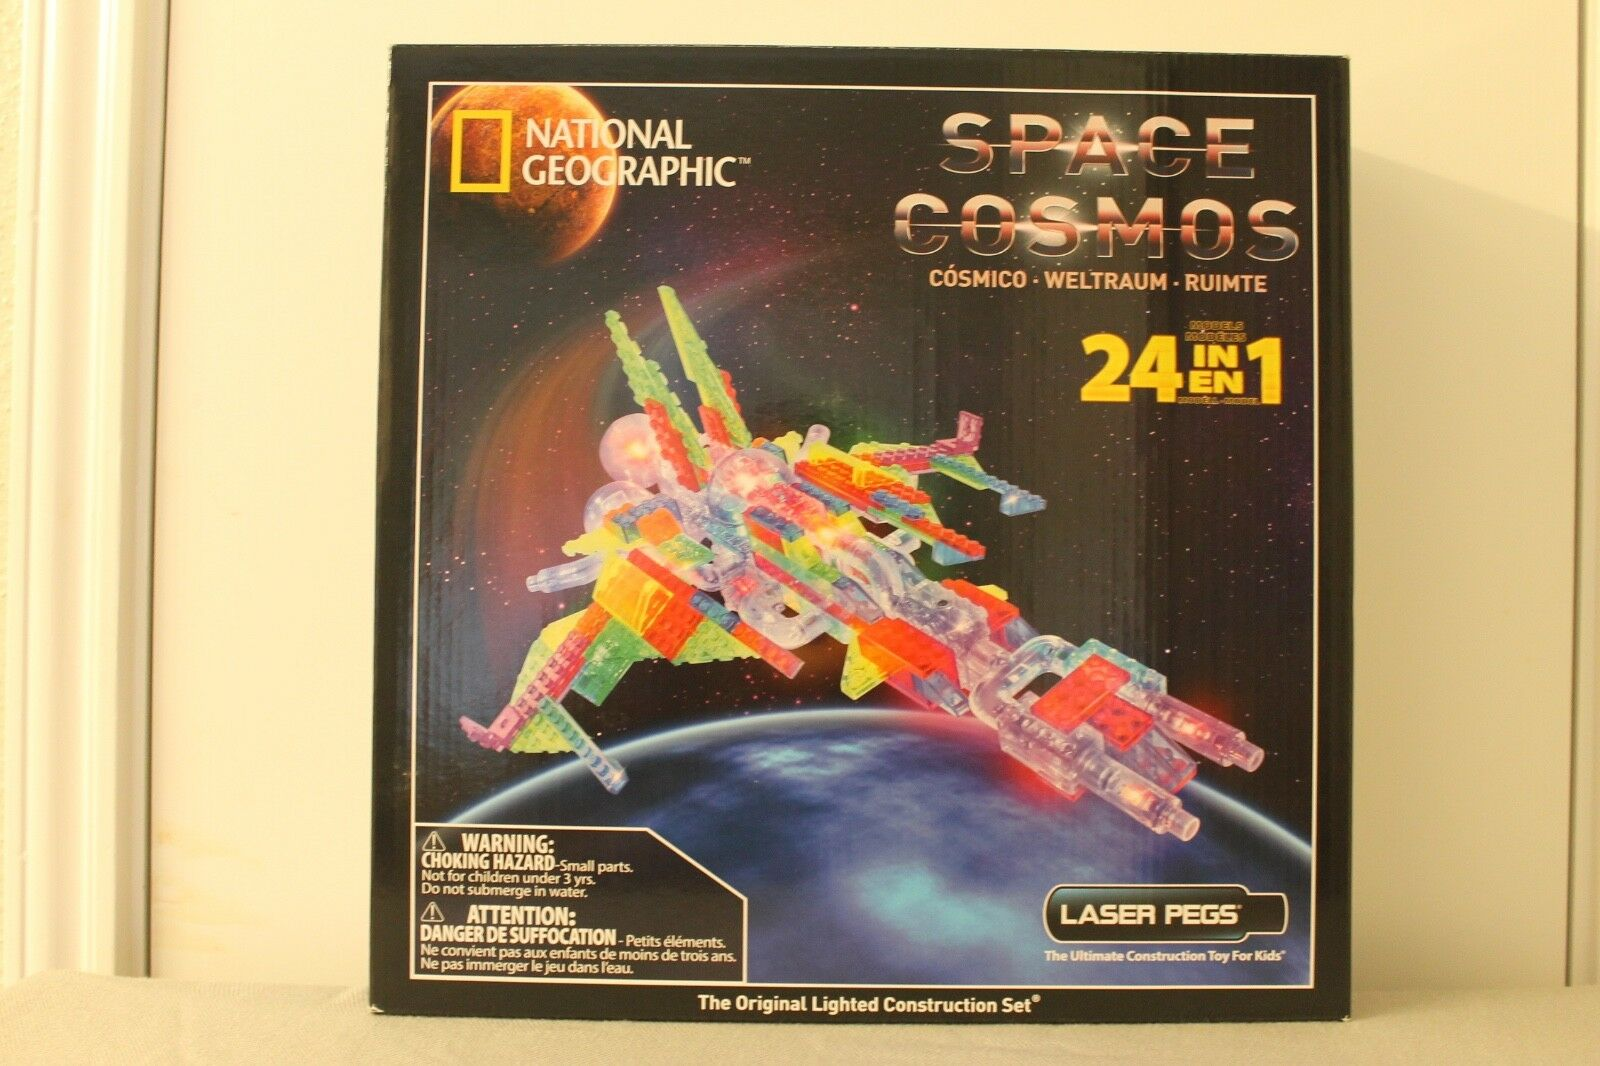 National Geographic Space Cosmos Laser Pegs NEW Lighted Construction Set 24 In 1